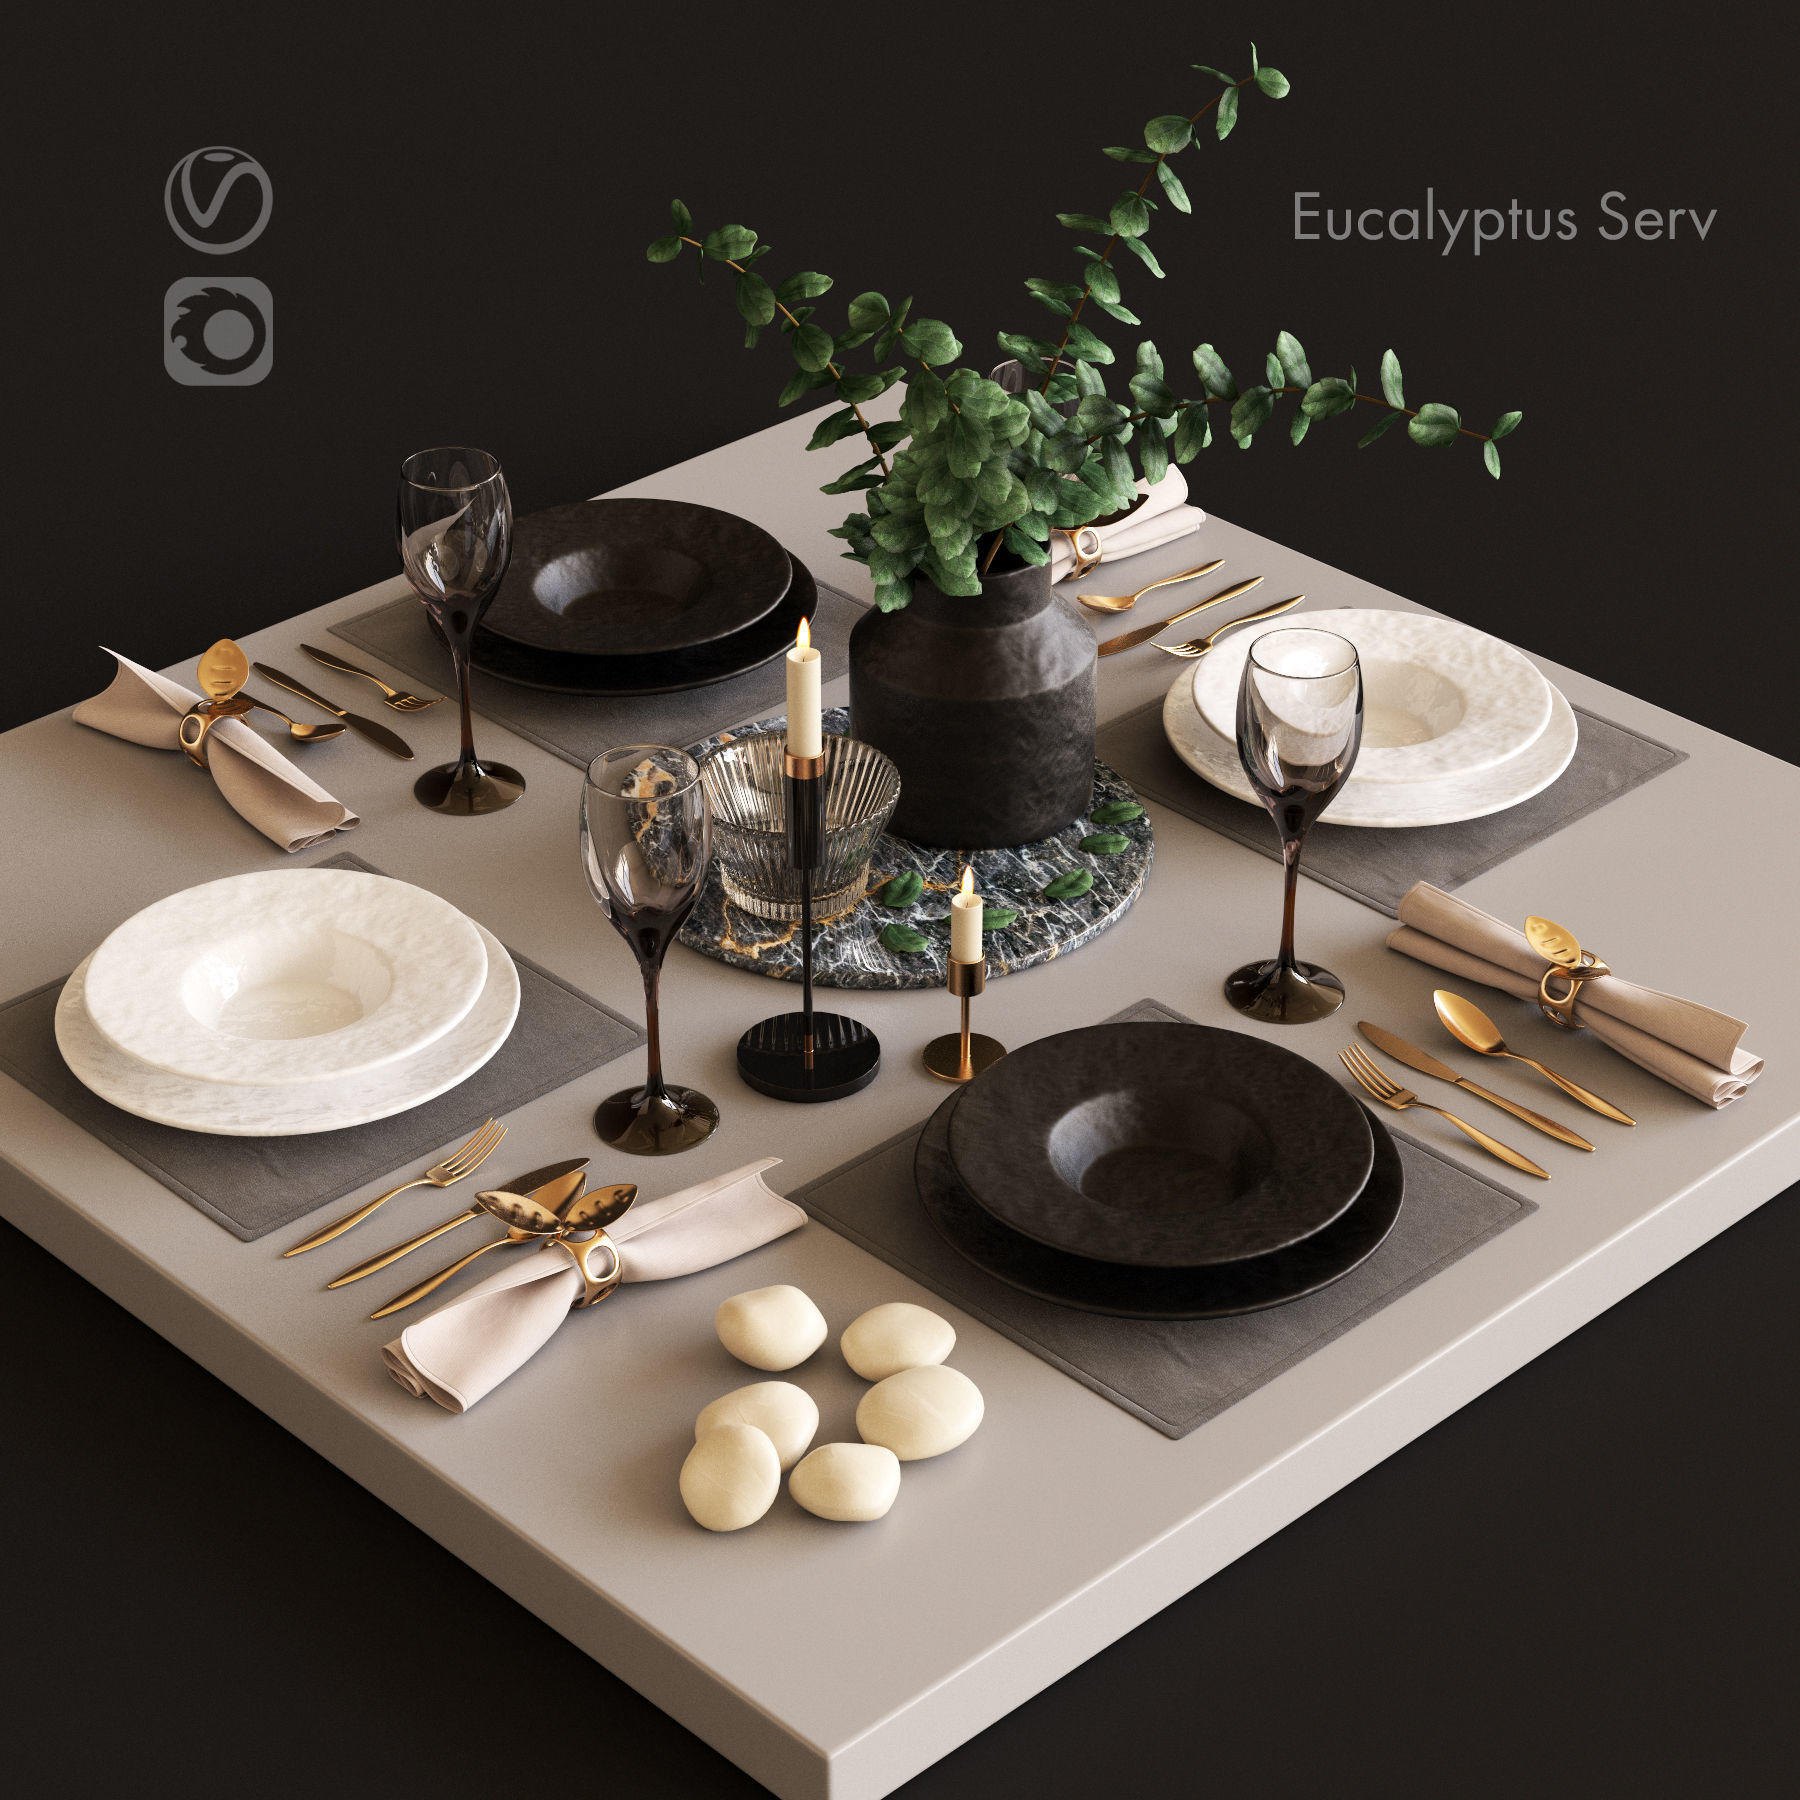 Serving with Eucalyptus